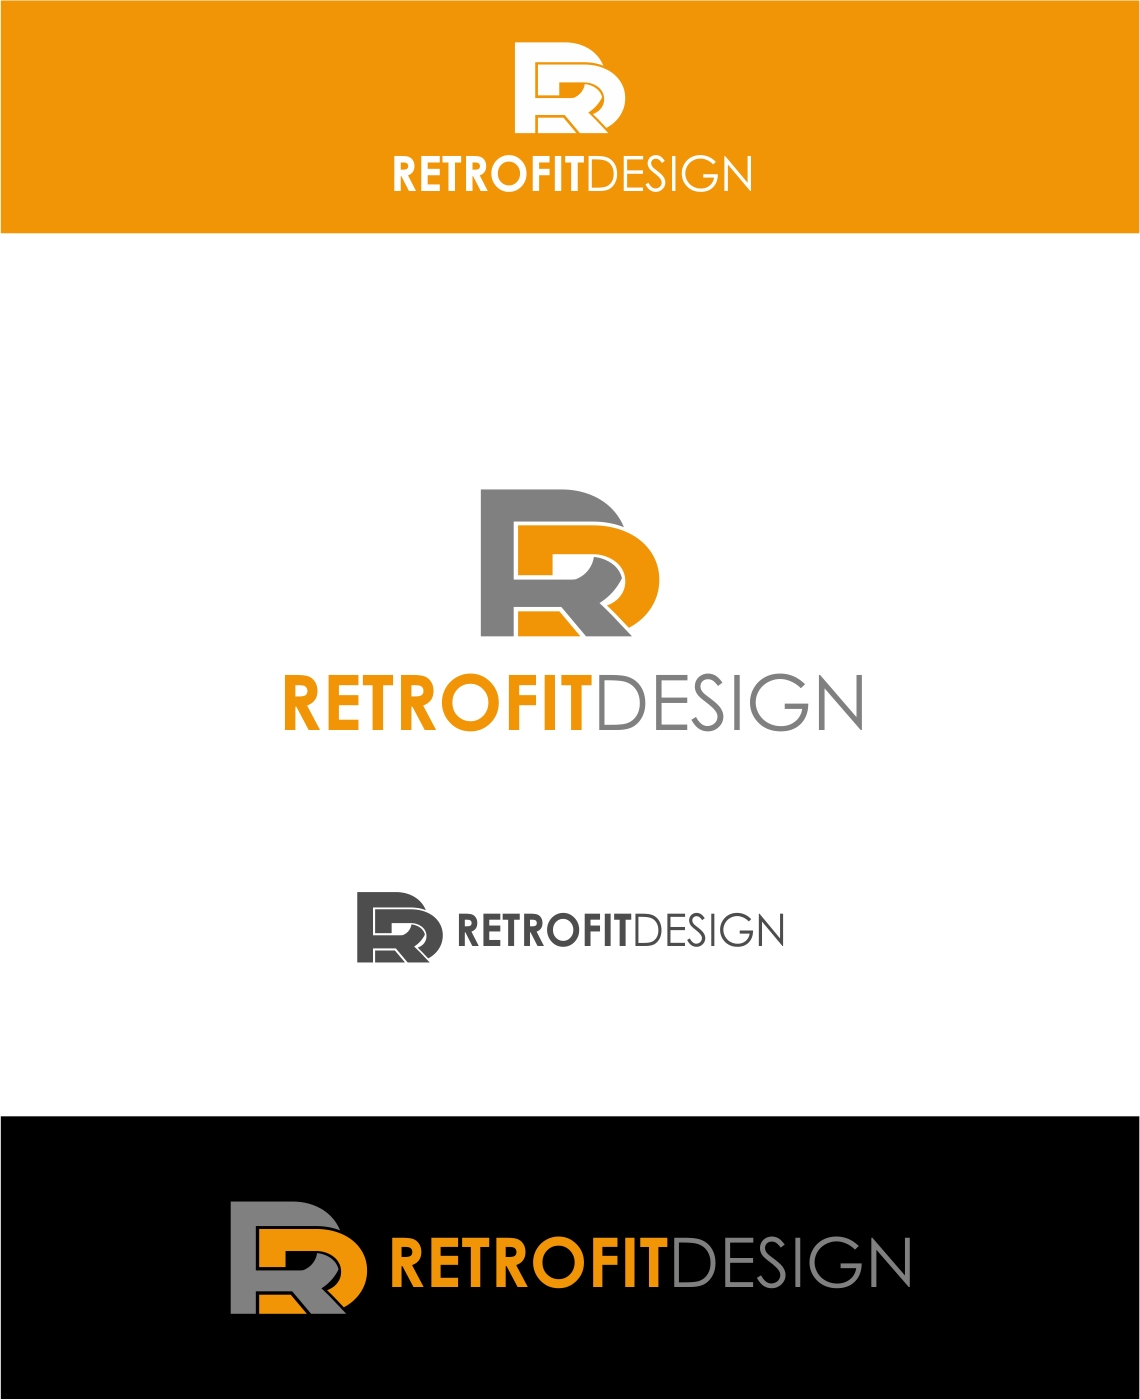 Logo Design by haidu - Entry No. 11 in the Logo Design Contest Inspiring Logo Design for retrofit design.